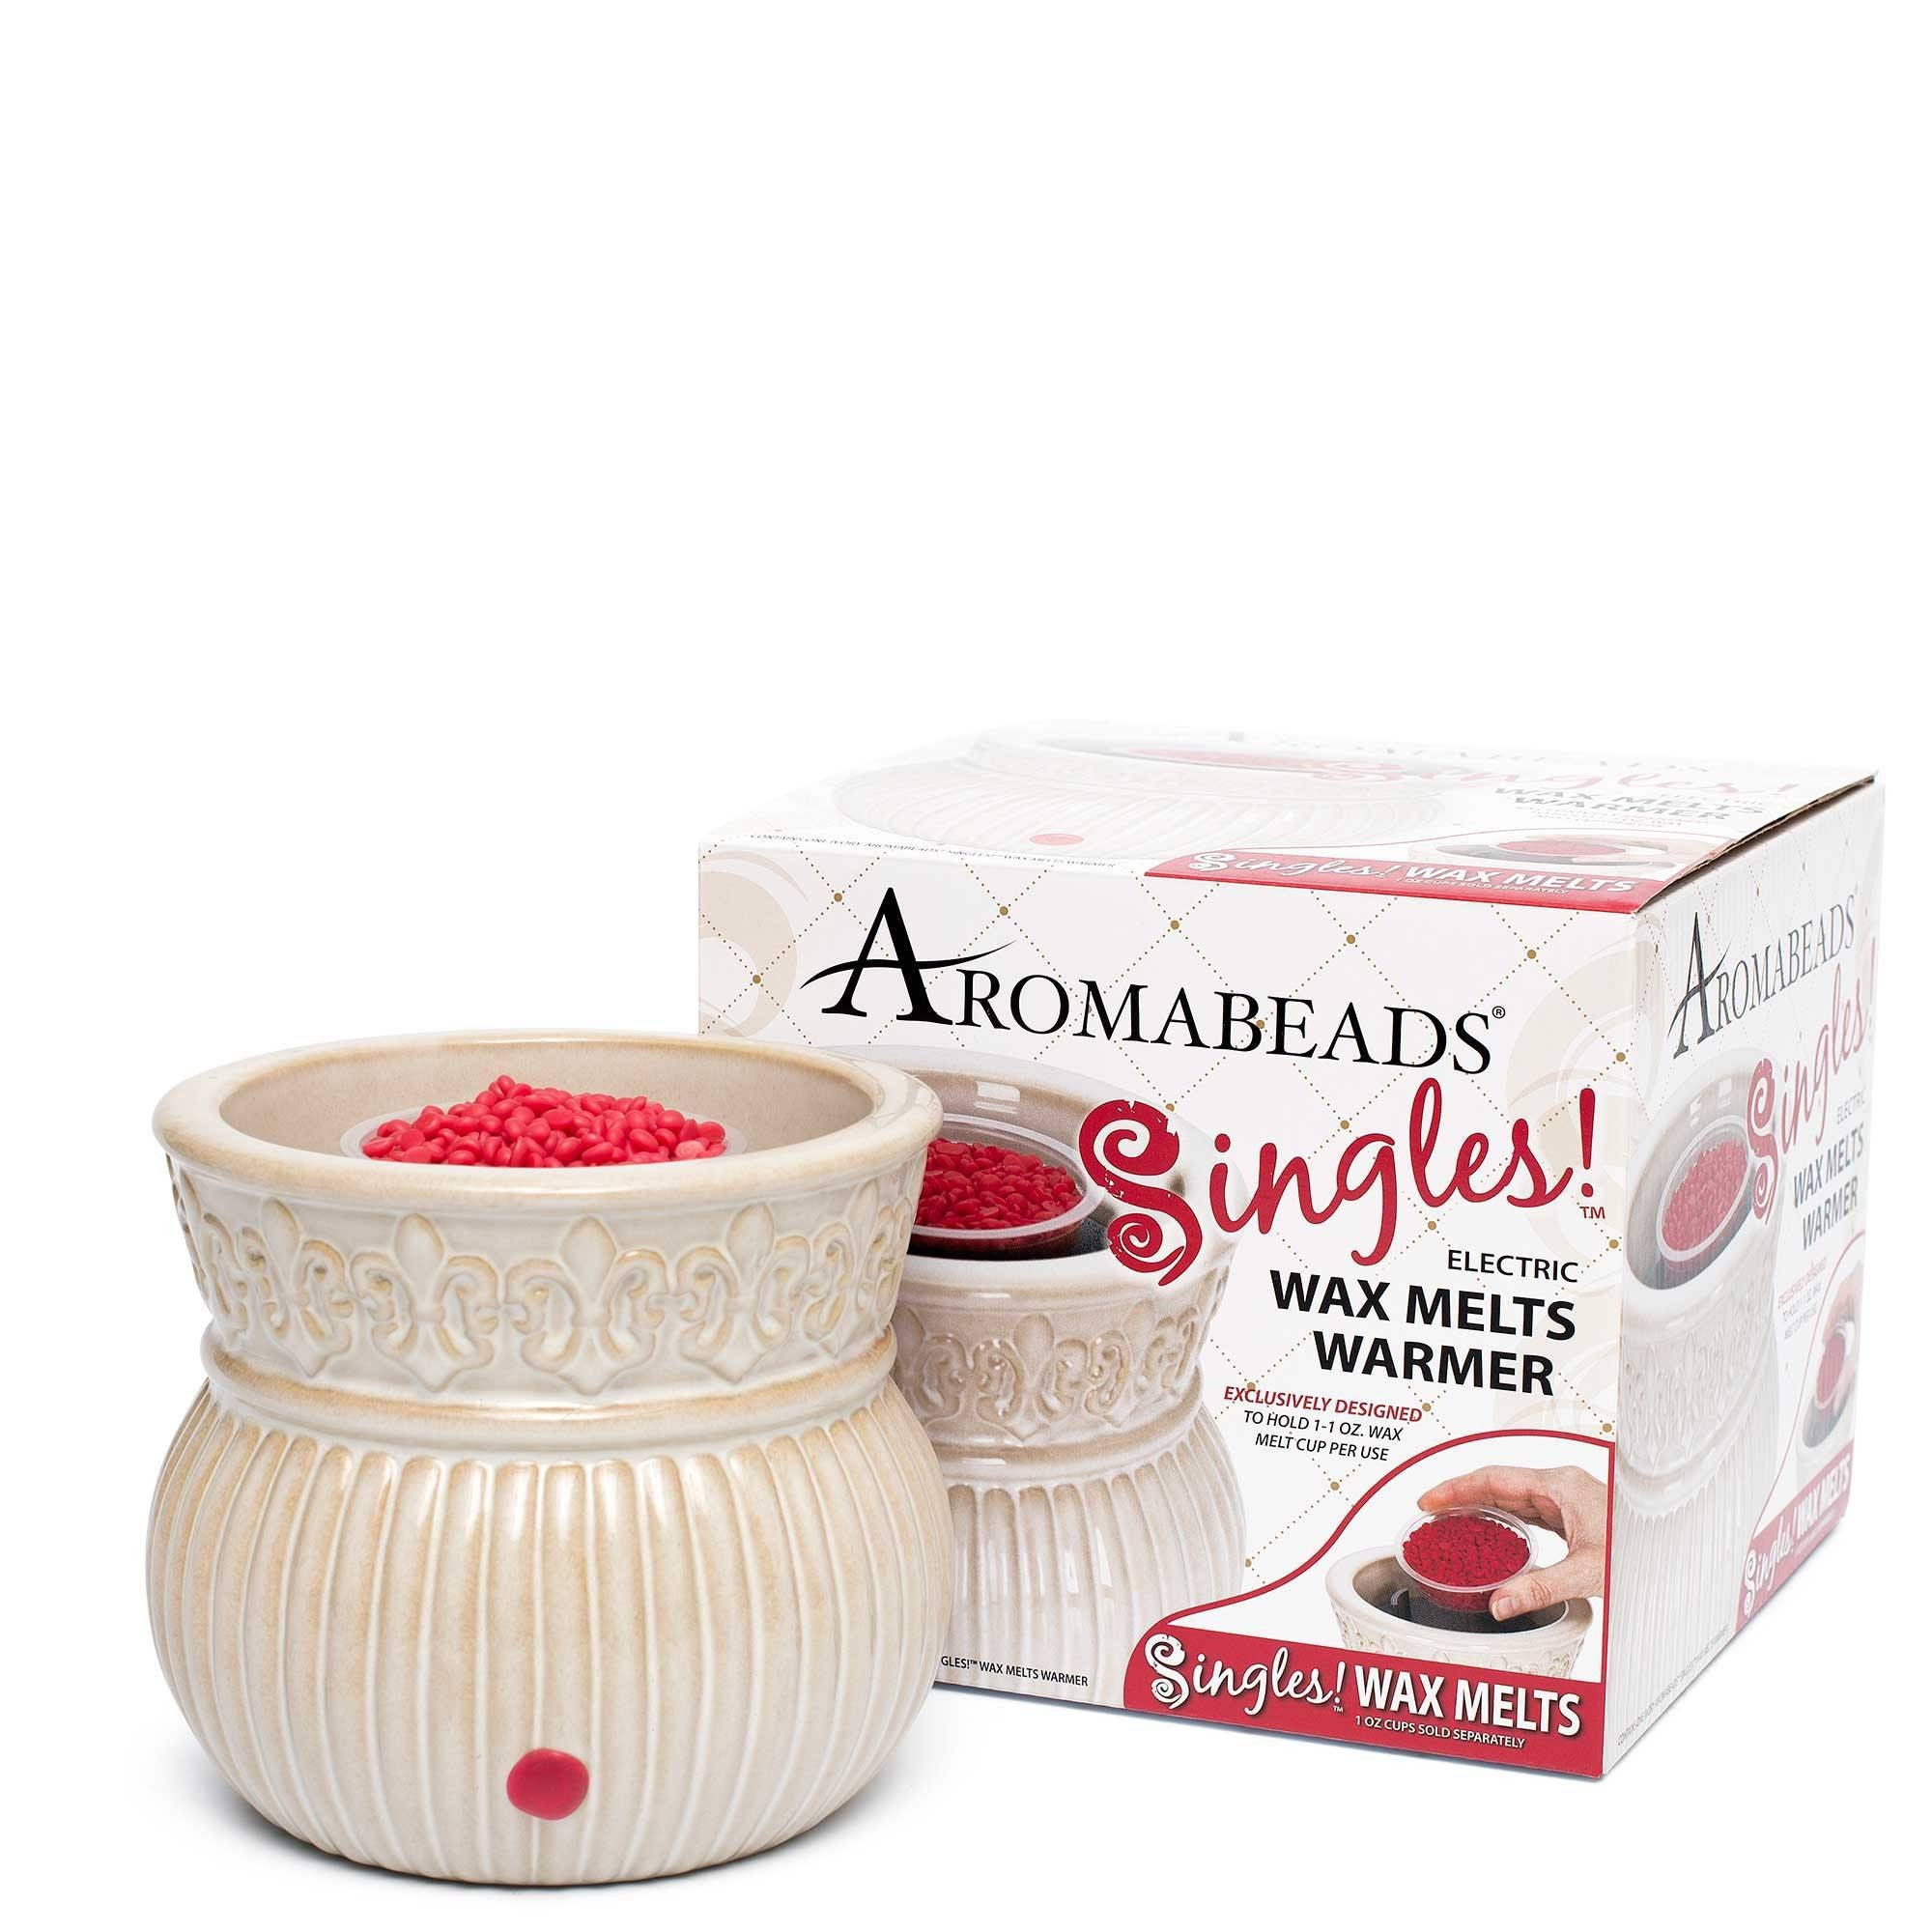 Aromabeads Singles Caramel Apple Toffee Scented Wax Melts - Candlemart.com - 4